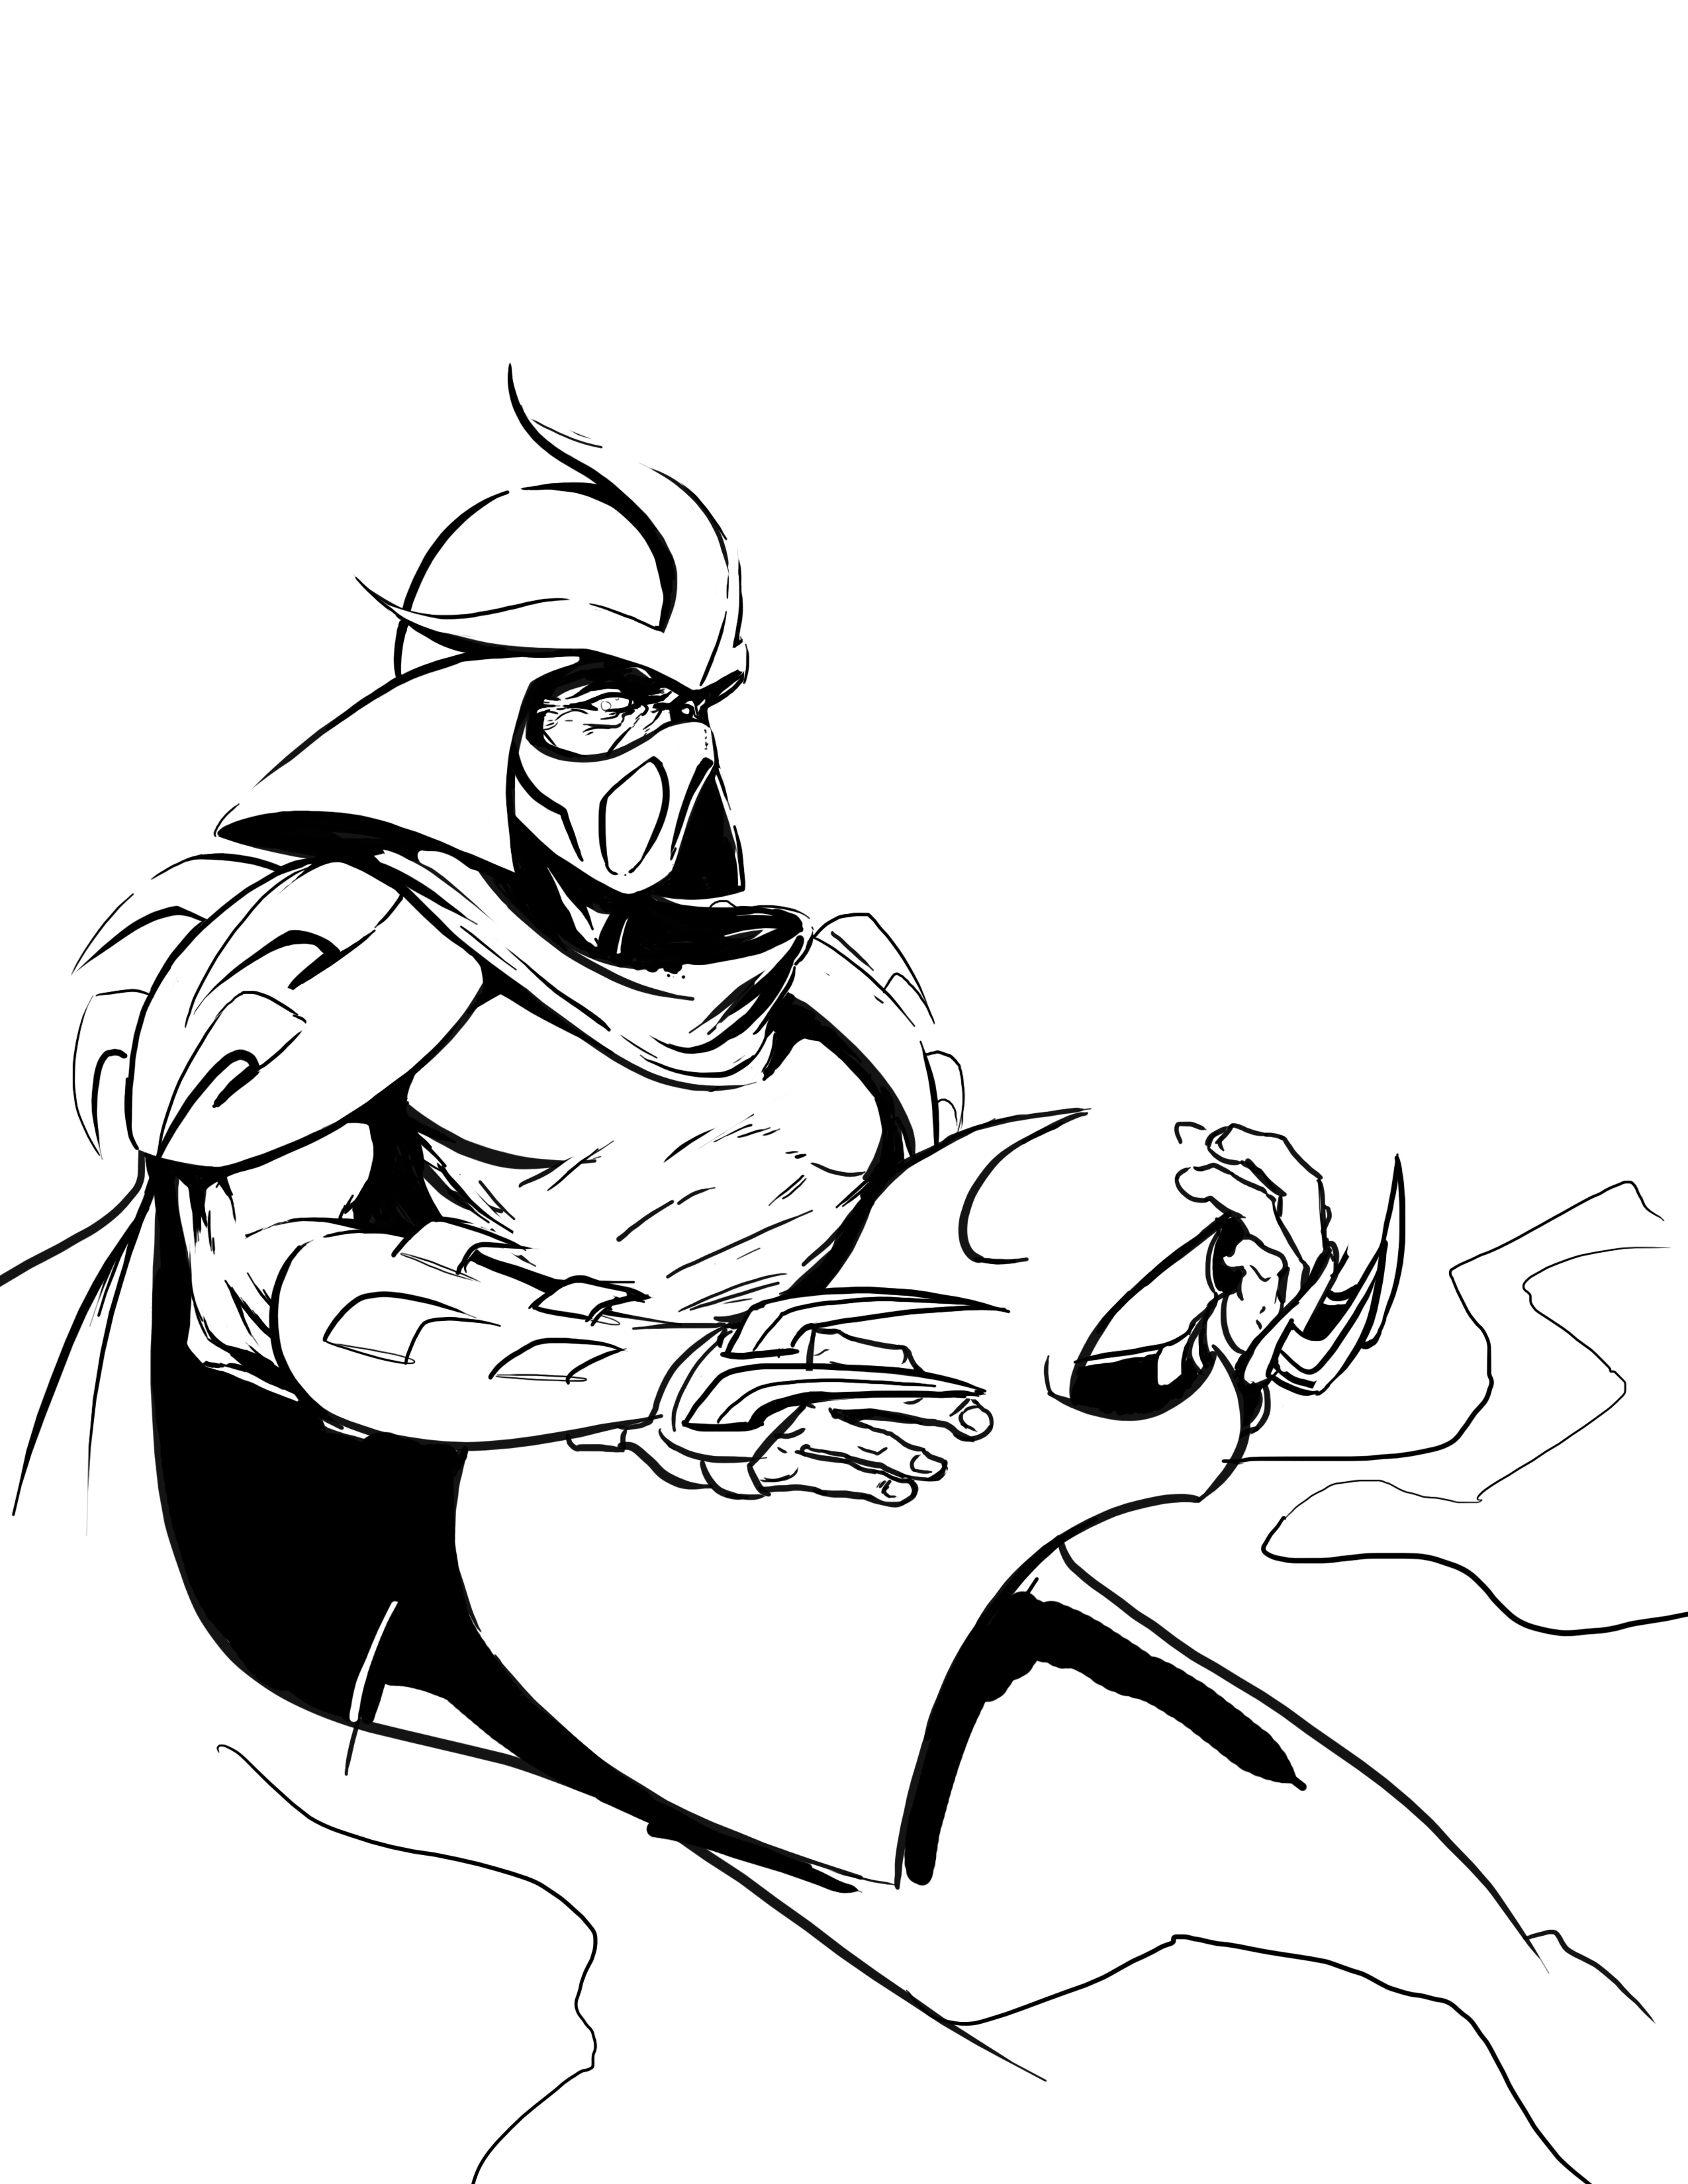 Shredder Drawing At Free For Personal Use Paper Wiring Diagram 2550x3300 Wip Zach Fischer Concept Artist Illustrator